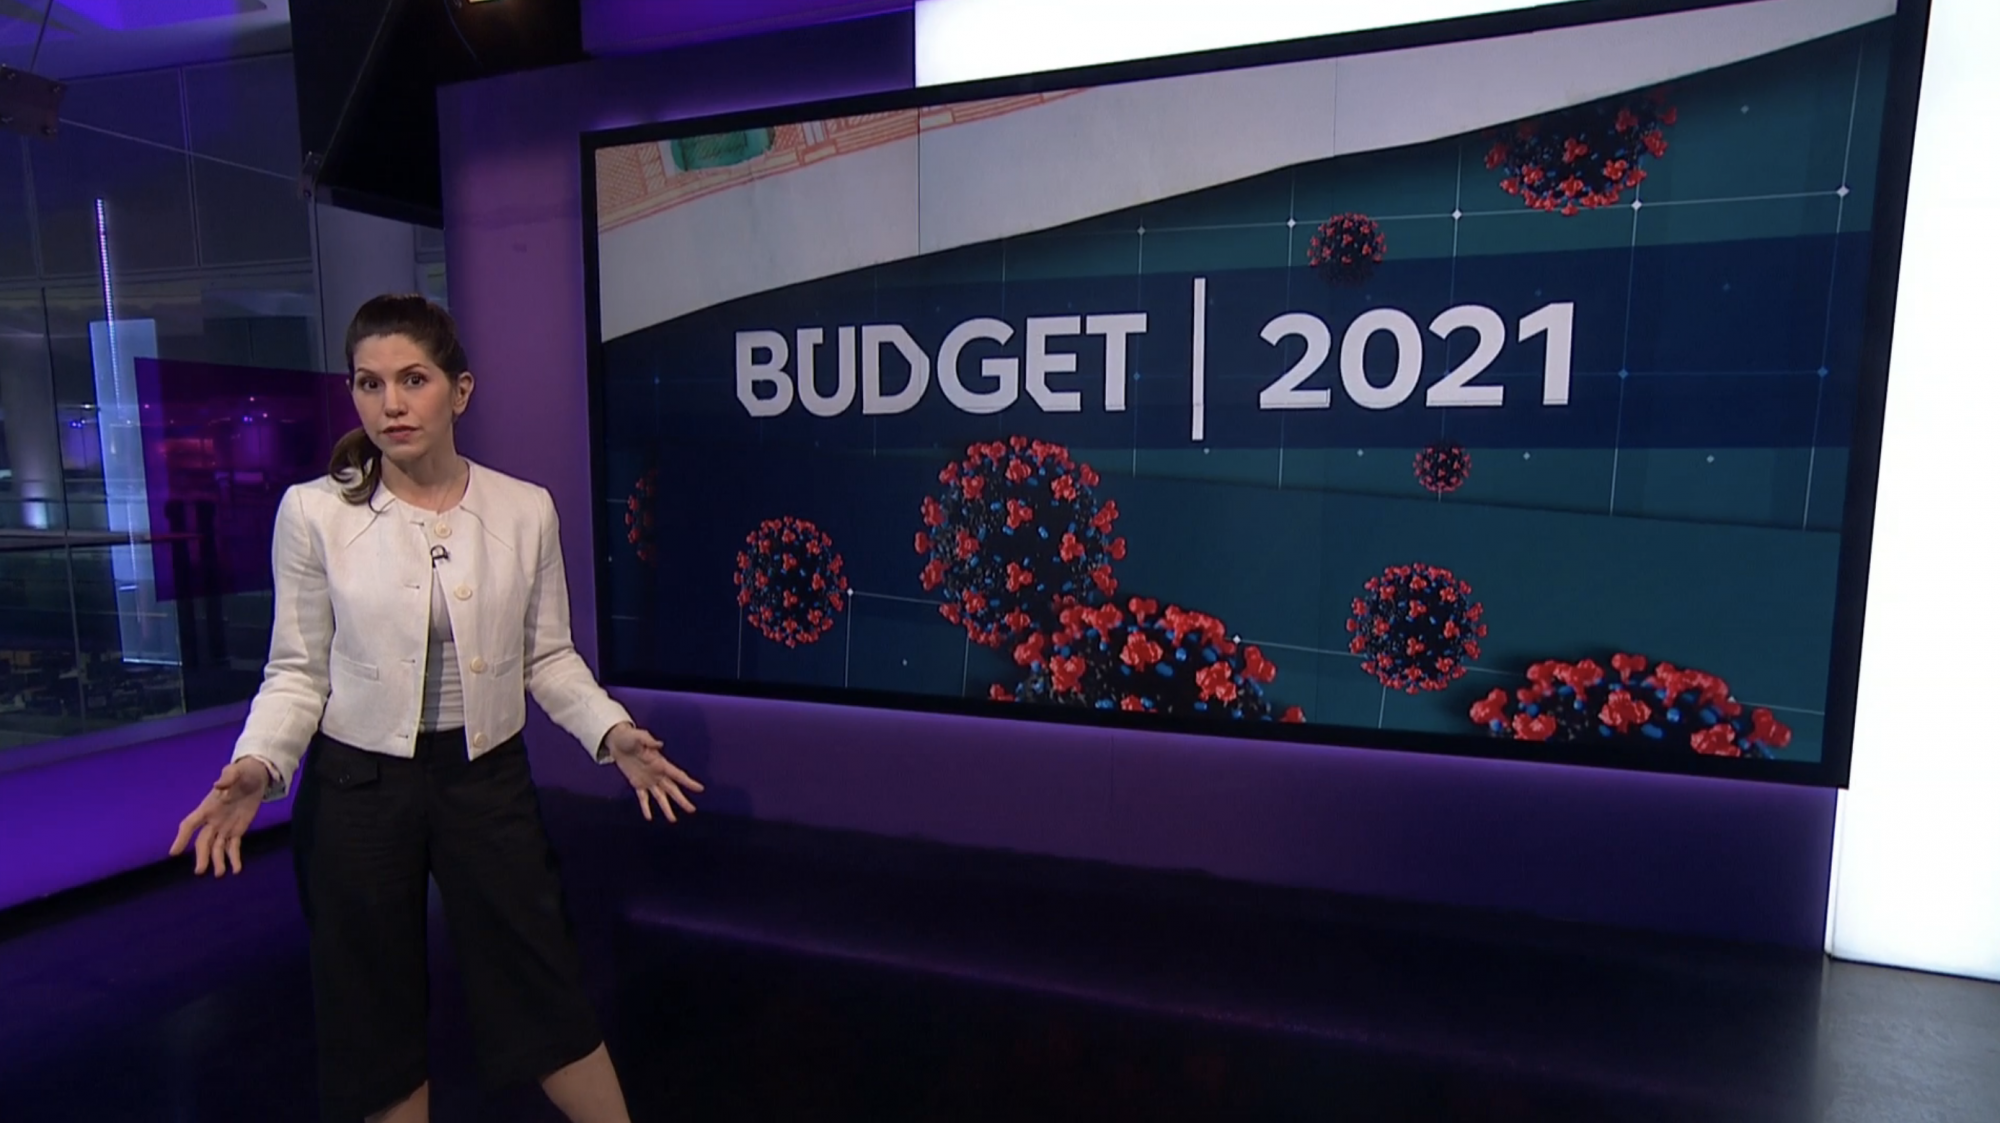 Budget 2021: Spend, spend, spend followed by aggressive tax hikes - channel 4